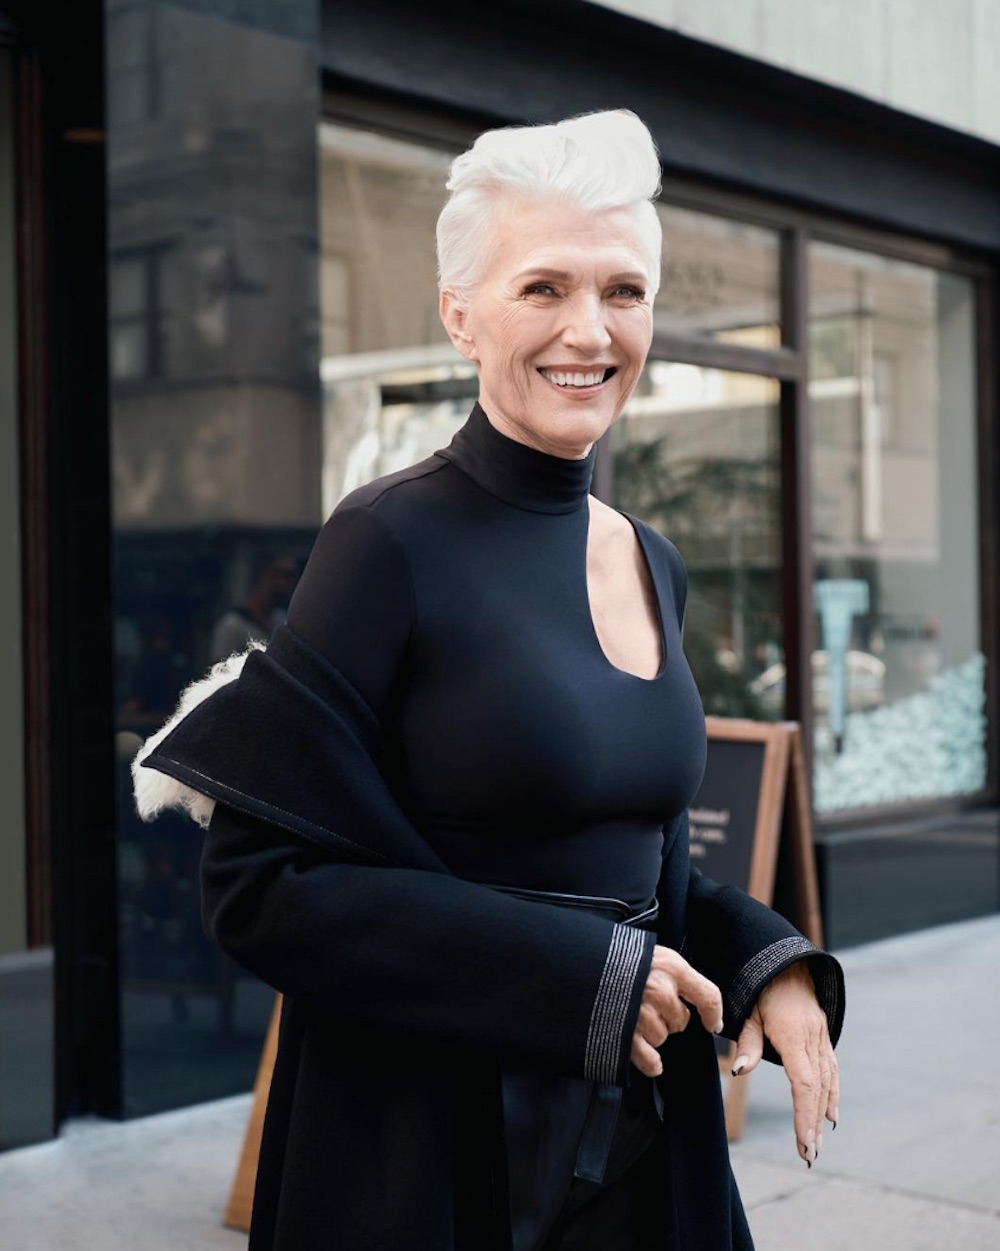 The newest CoverGirl ambassador is 69 years old, proving that beauty is ageless